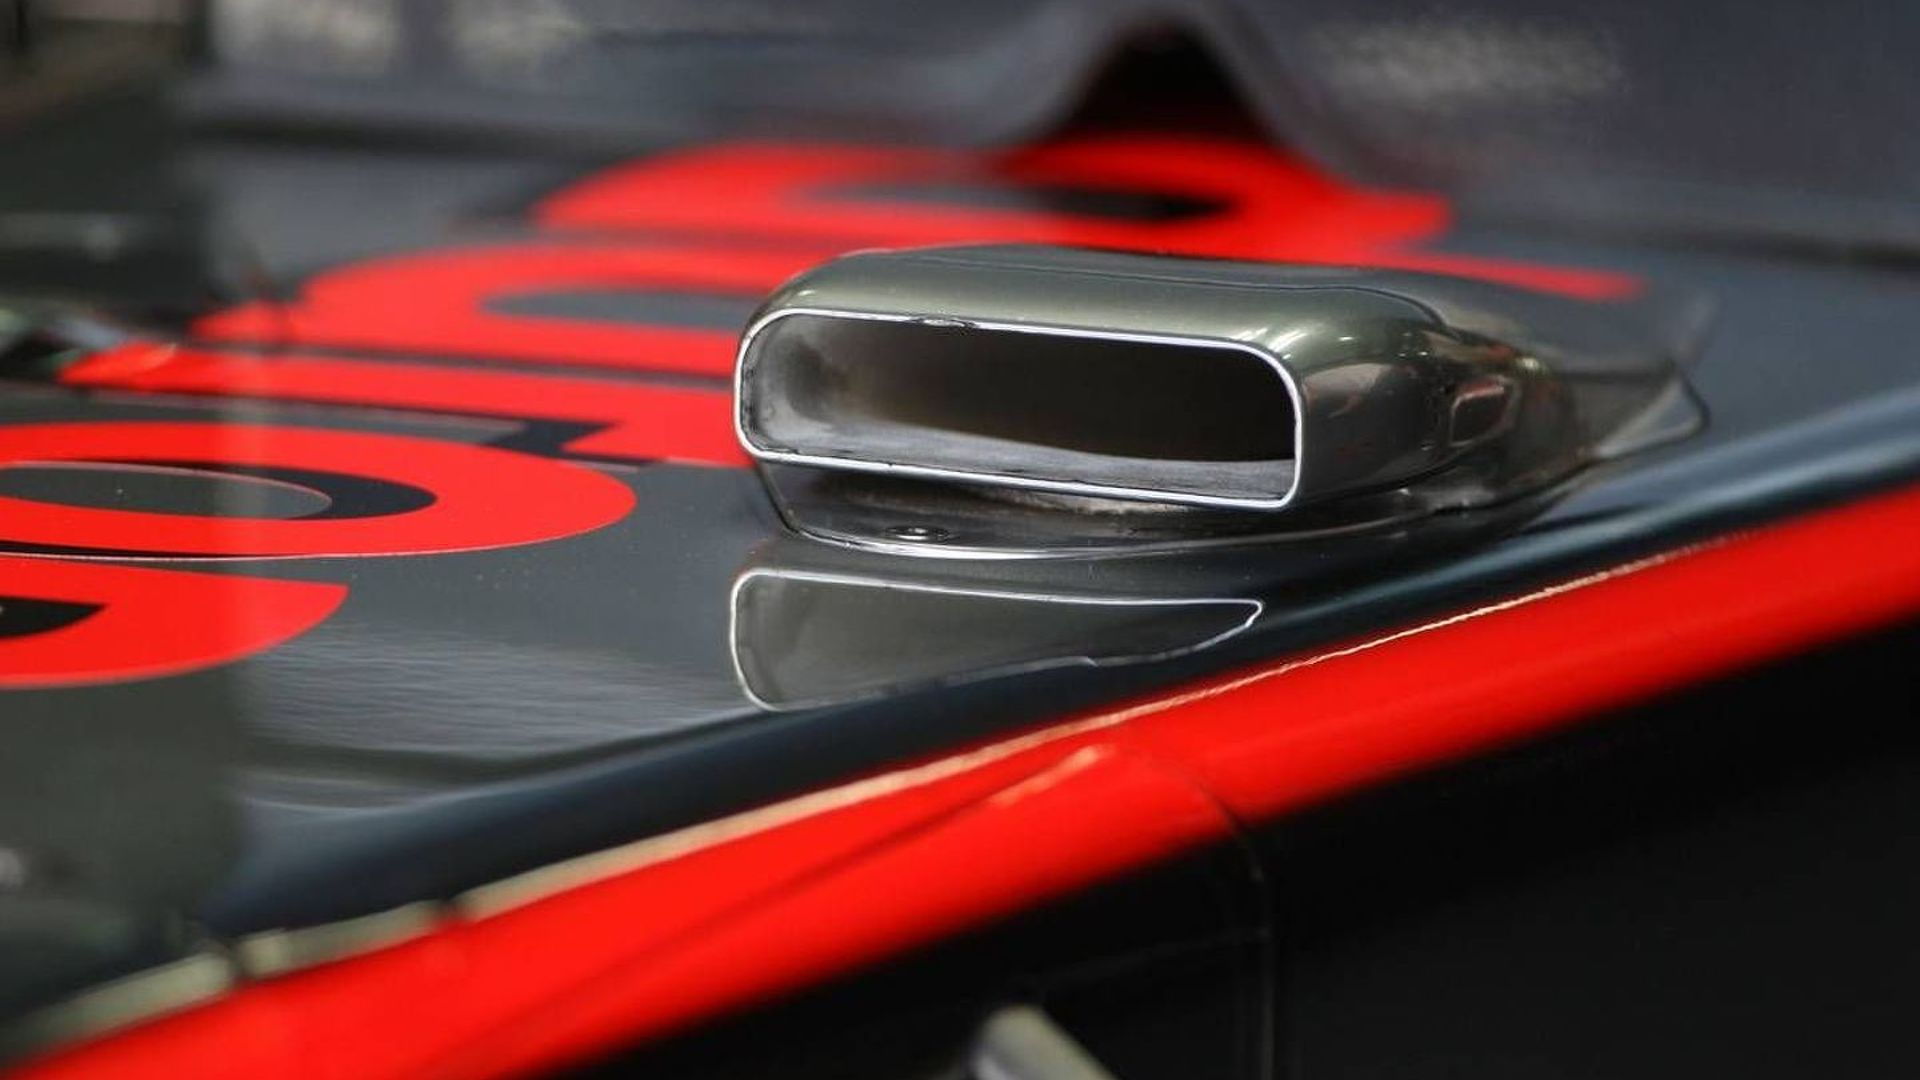 F-duct: McLaren call it RW80, Red Bull call it the 'f'ing duct'